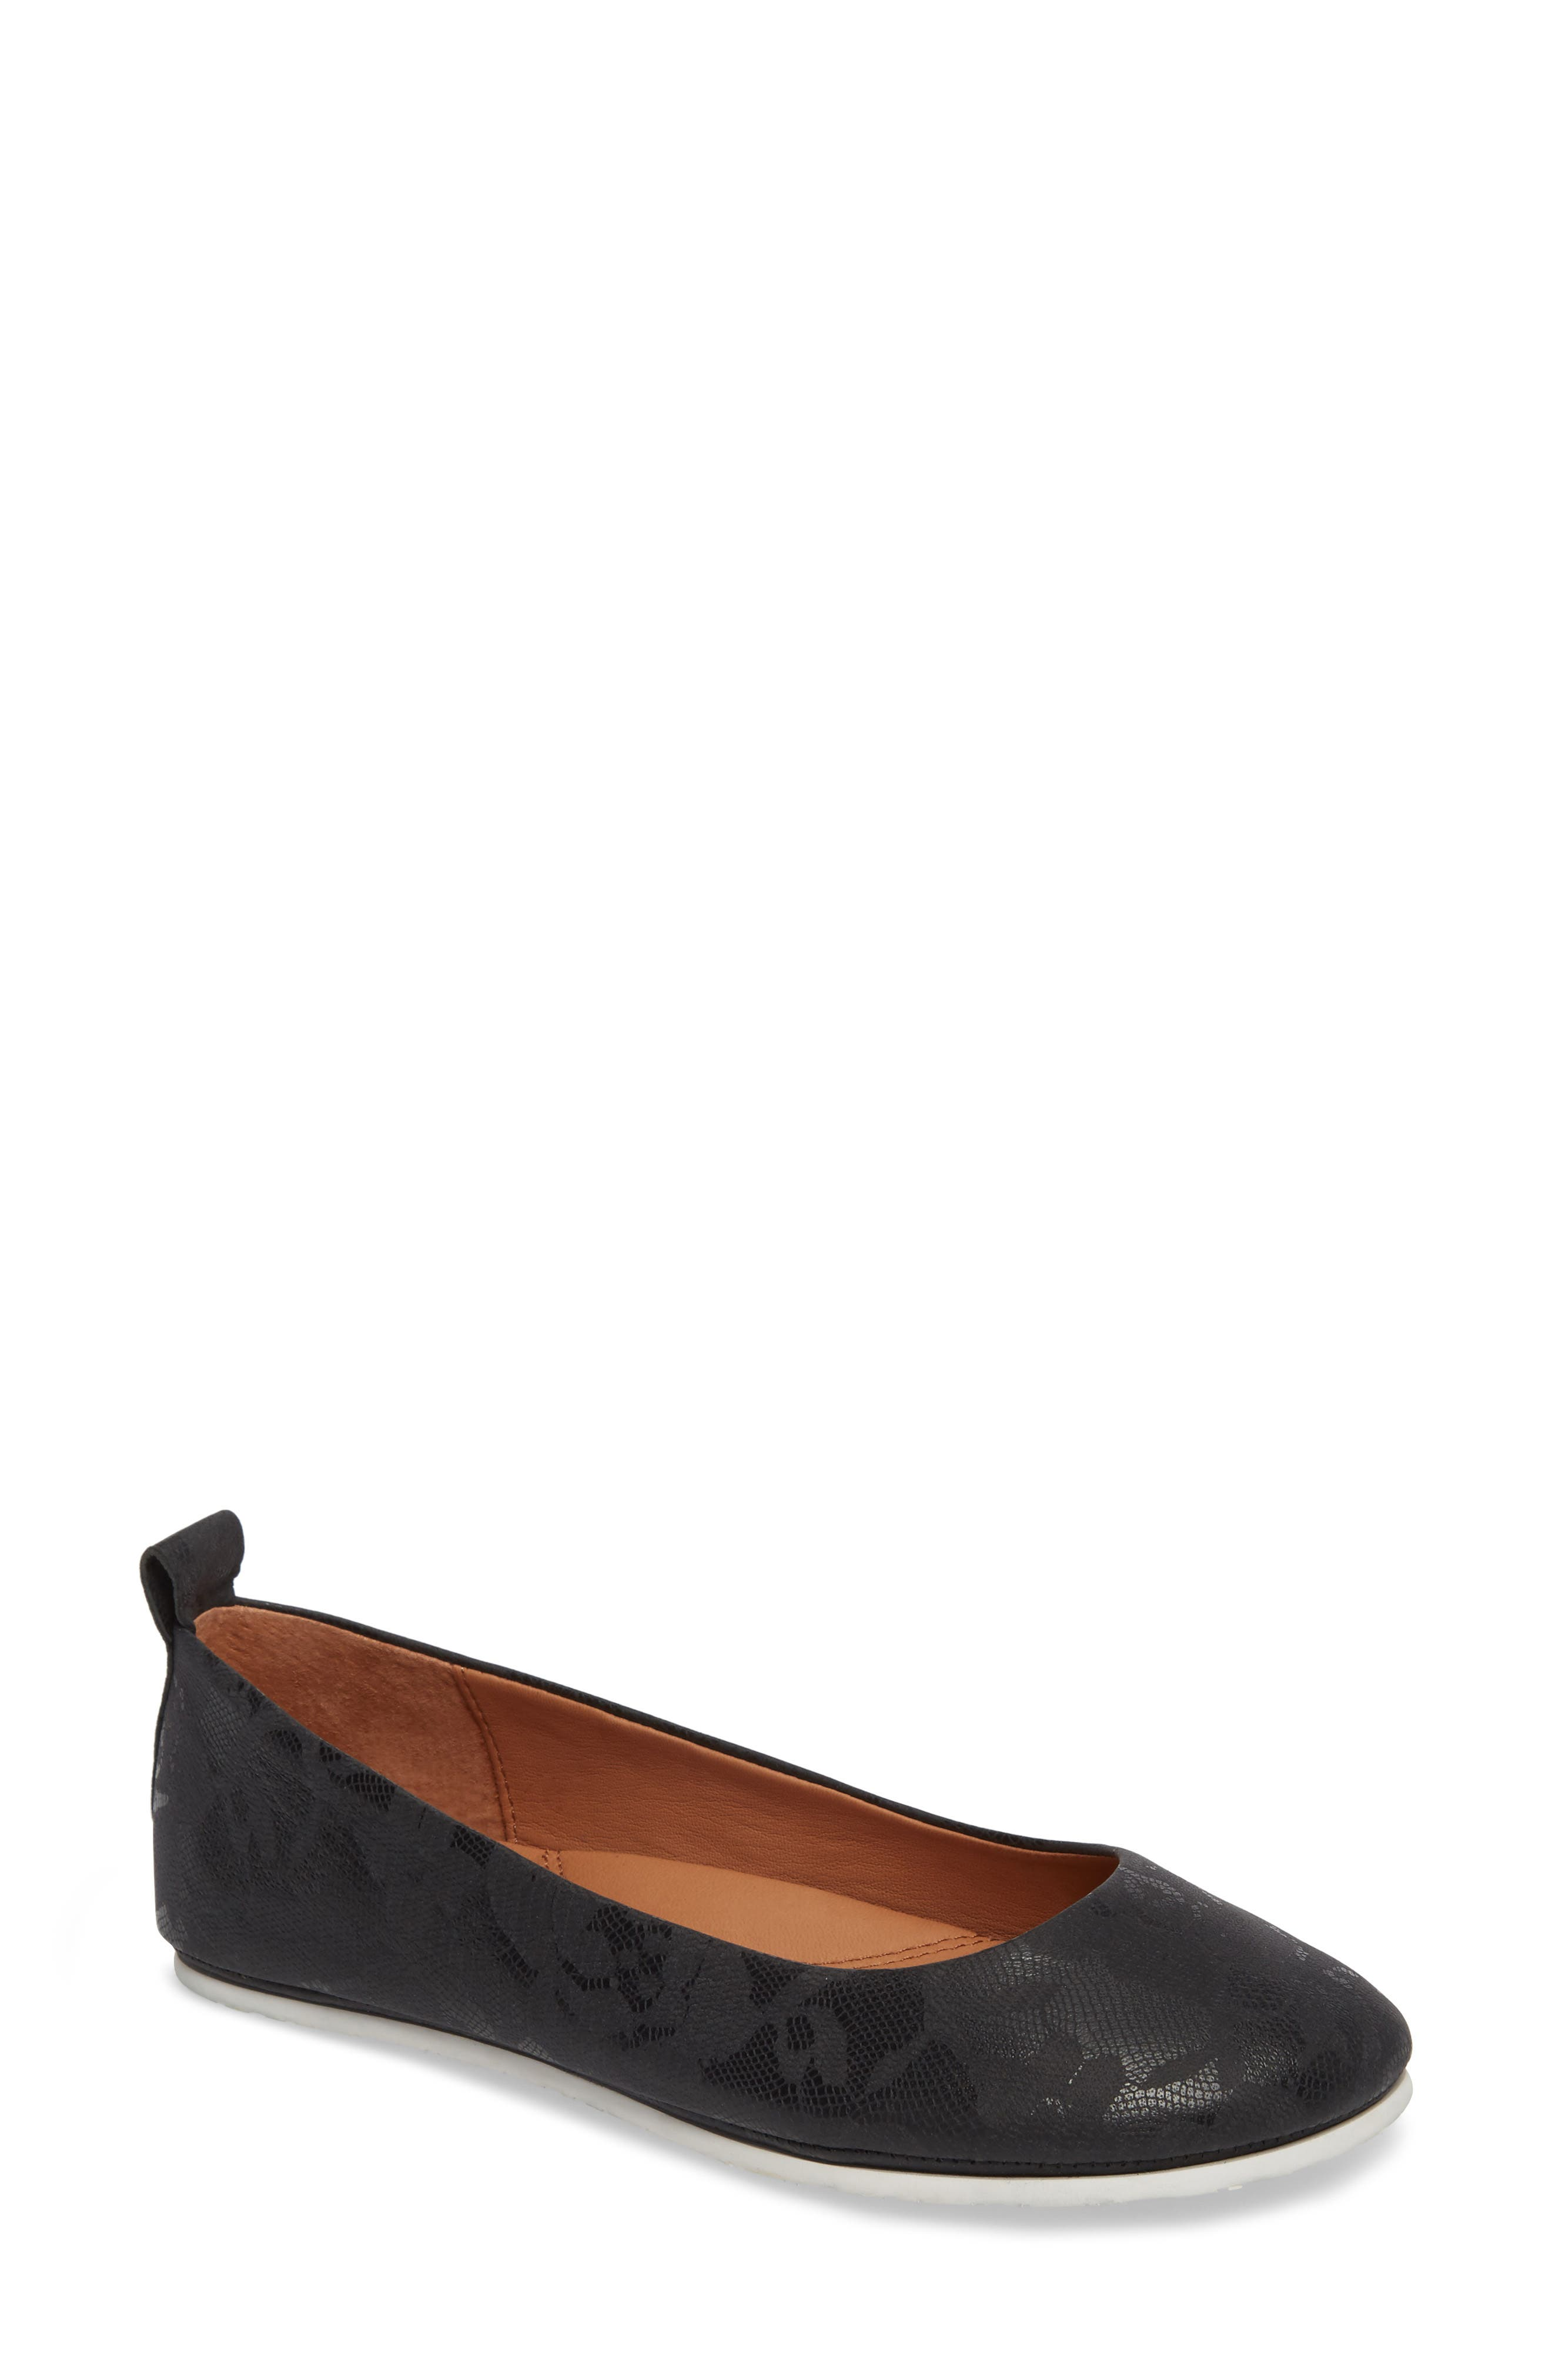 GENTLE SOULS BY KENNETH COLE Dana Flat, Main, color, BLACK/ BLACK LEATHER